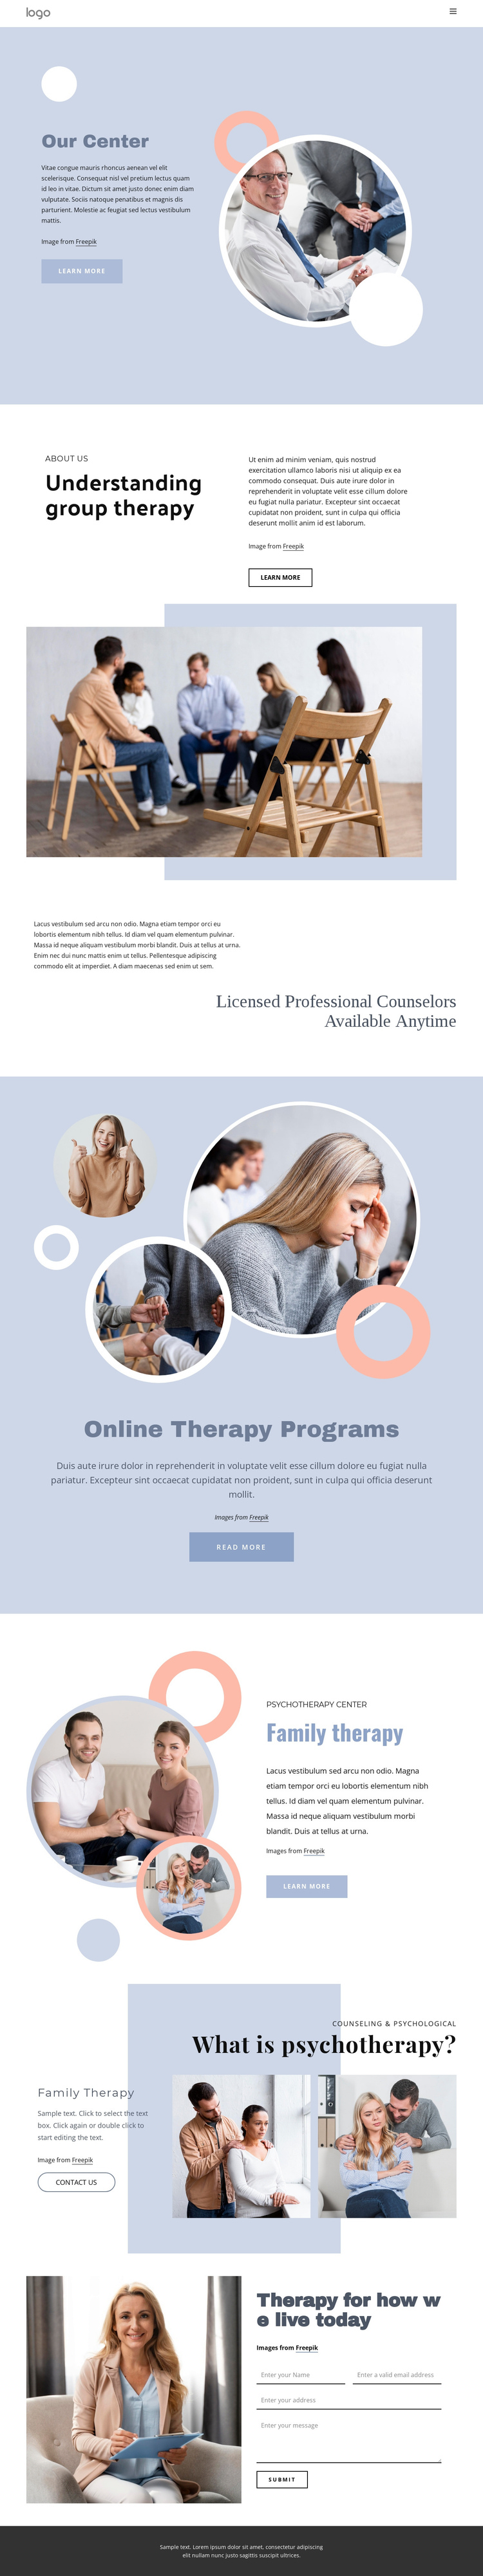 Licensed professional counselors Website Builder Software